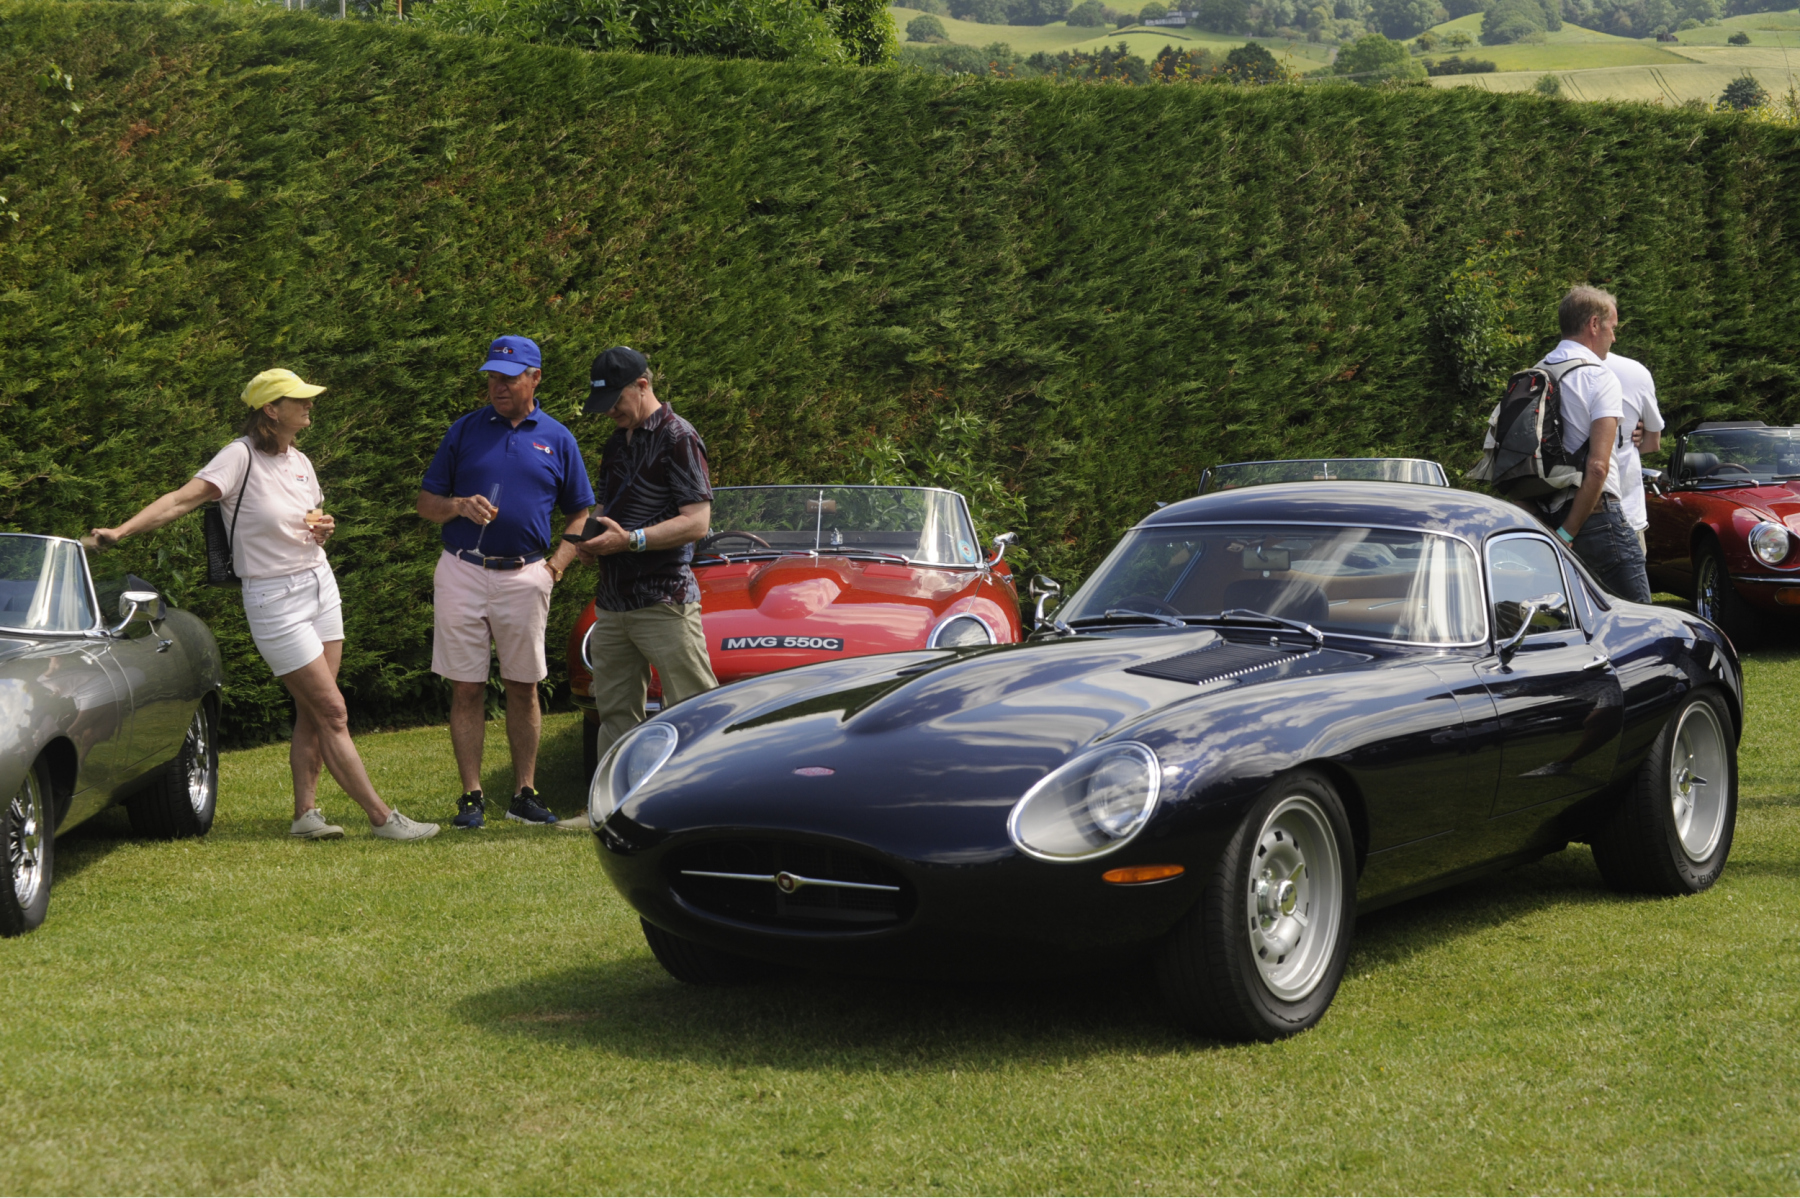 E-type-60-Saturday-photo-by-Abigail-Humphries-461